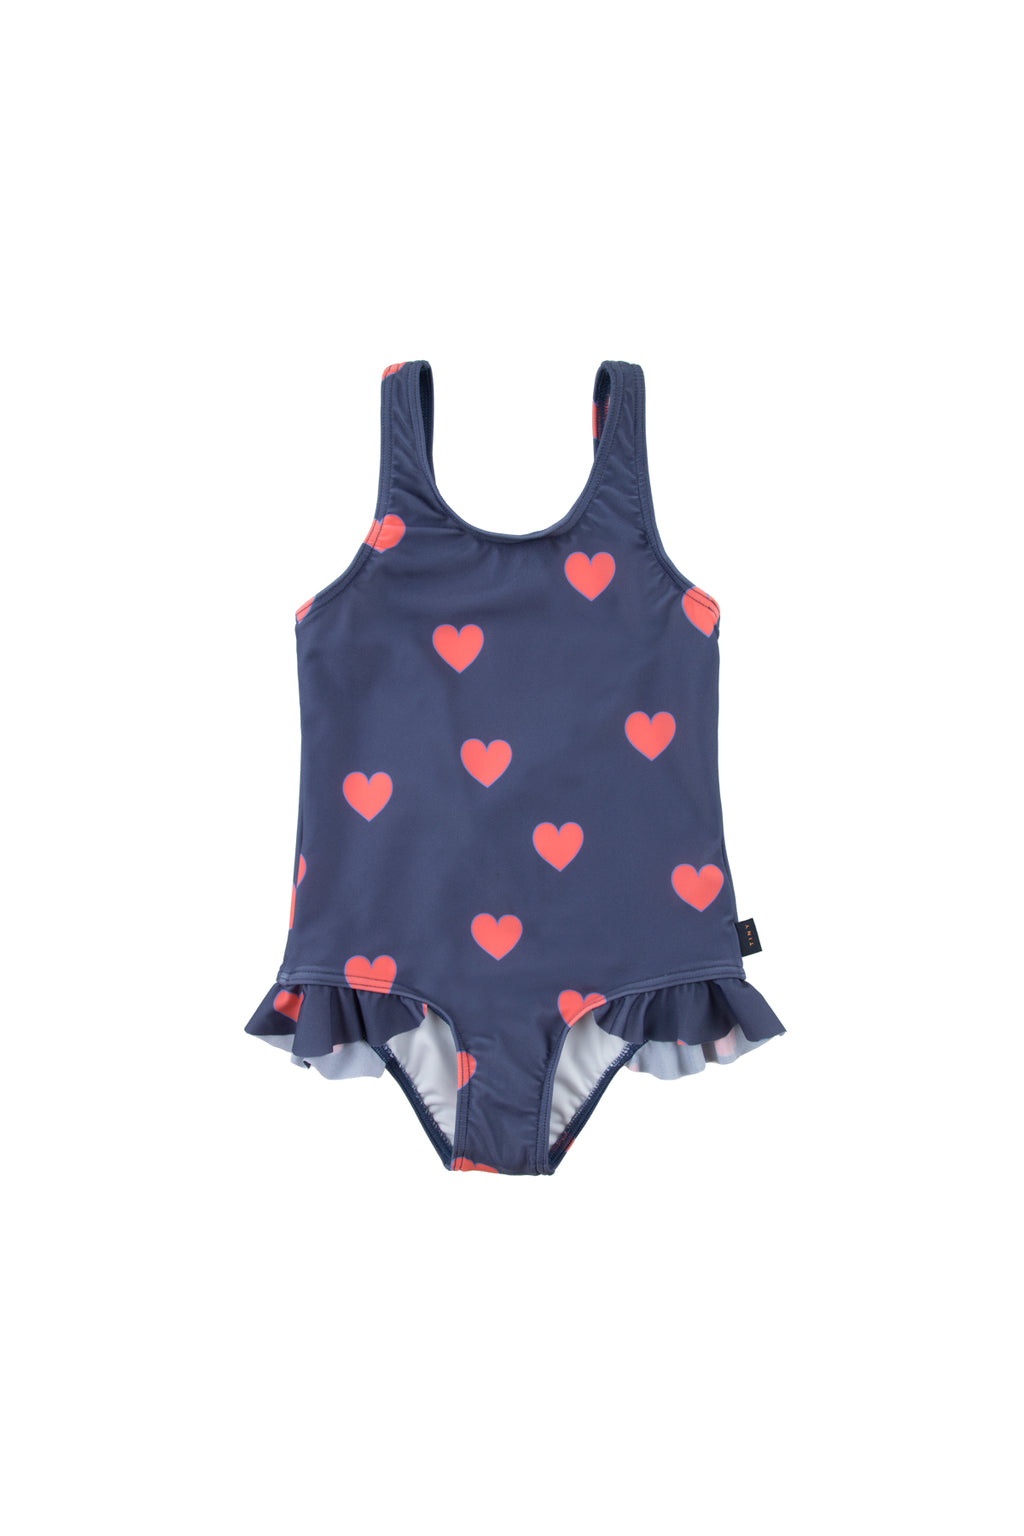 Tiny Cottons Hearts Frills Swimsuit - Navy/Red